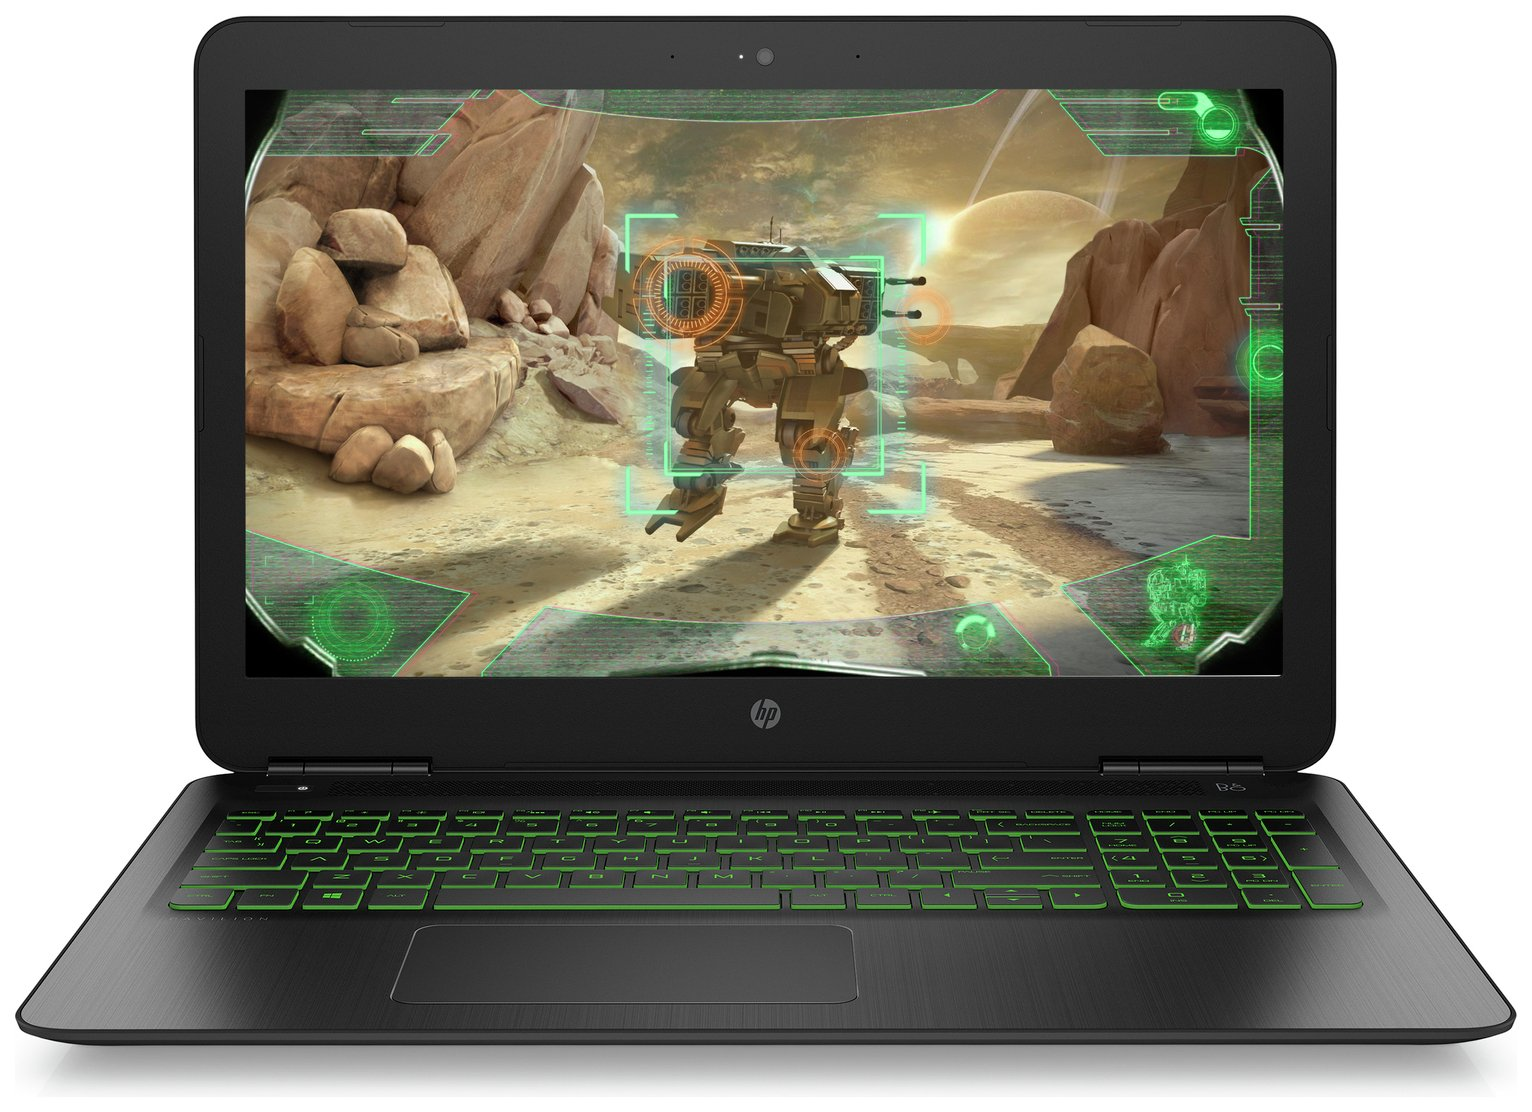 HP Pavilion 15.6 Inch i5 8GB 1TB GTX1050 FHD Gaming Laptop